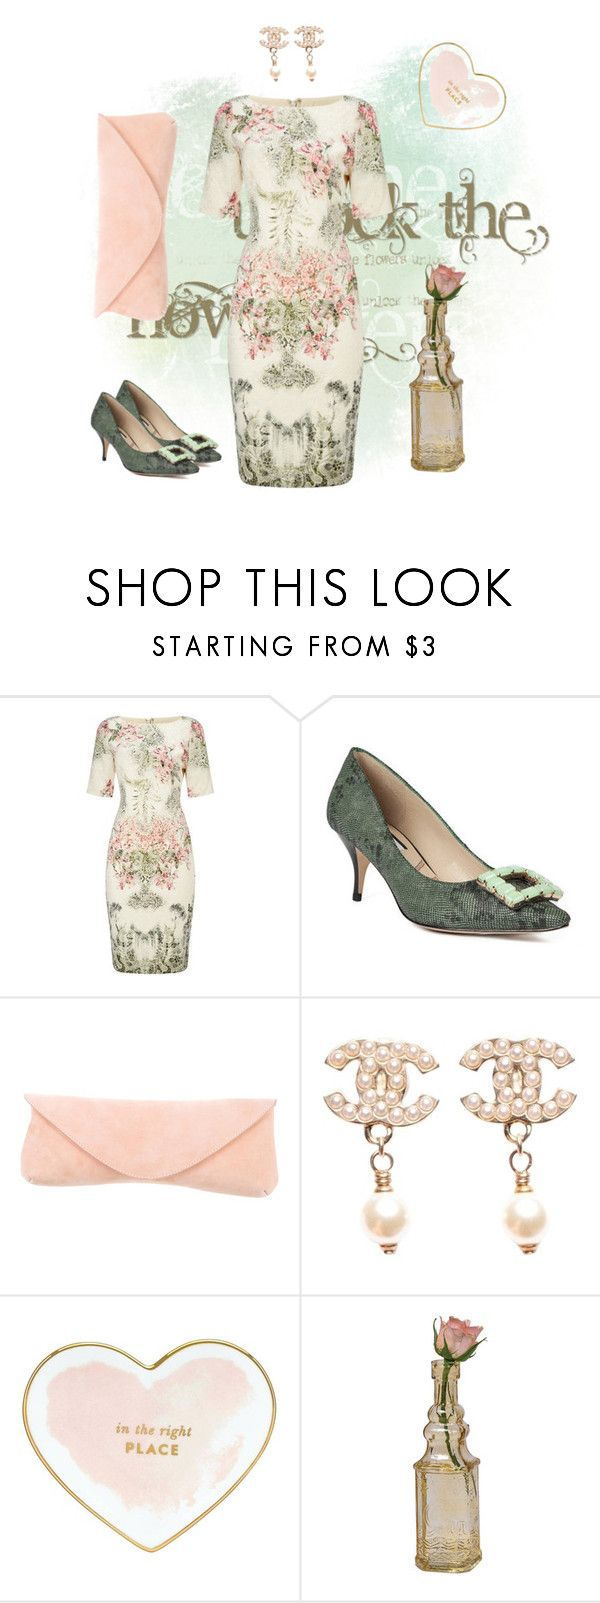 """""""HAVE FUN!"""" by alexandra-agatha ❤ liked on Polyvore featuring Adrianna Papell, Lucy Choi London, Narciso Rodriguez, Chanel, Kate Spade and Cultural Intrigue"""